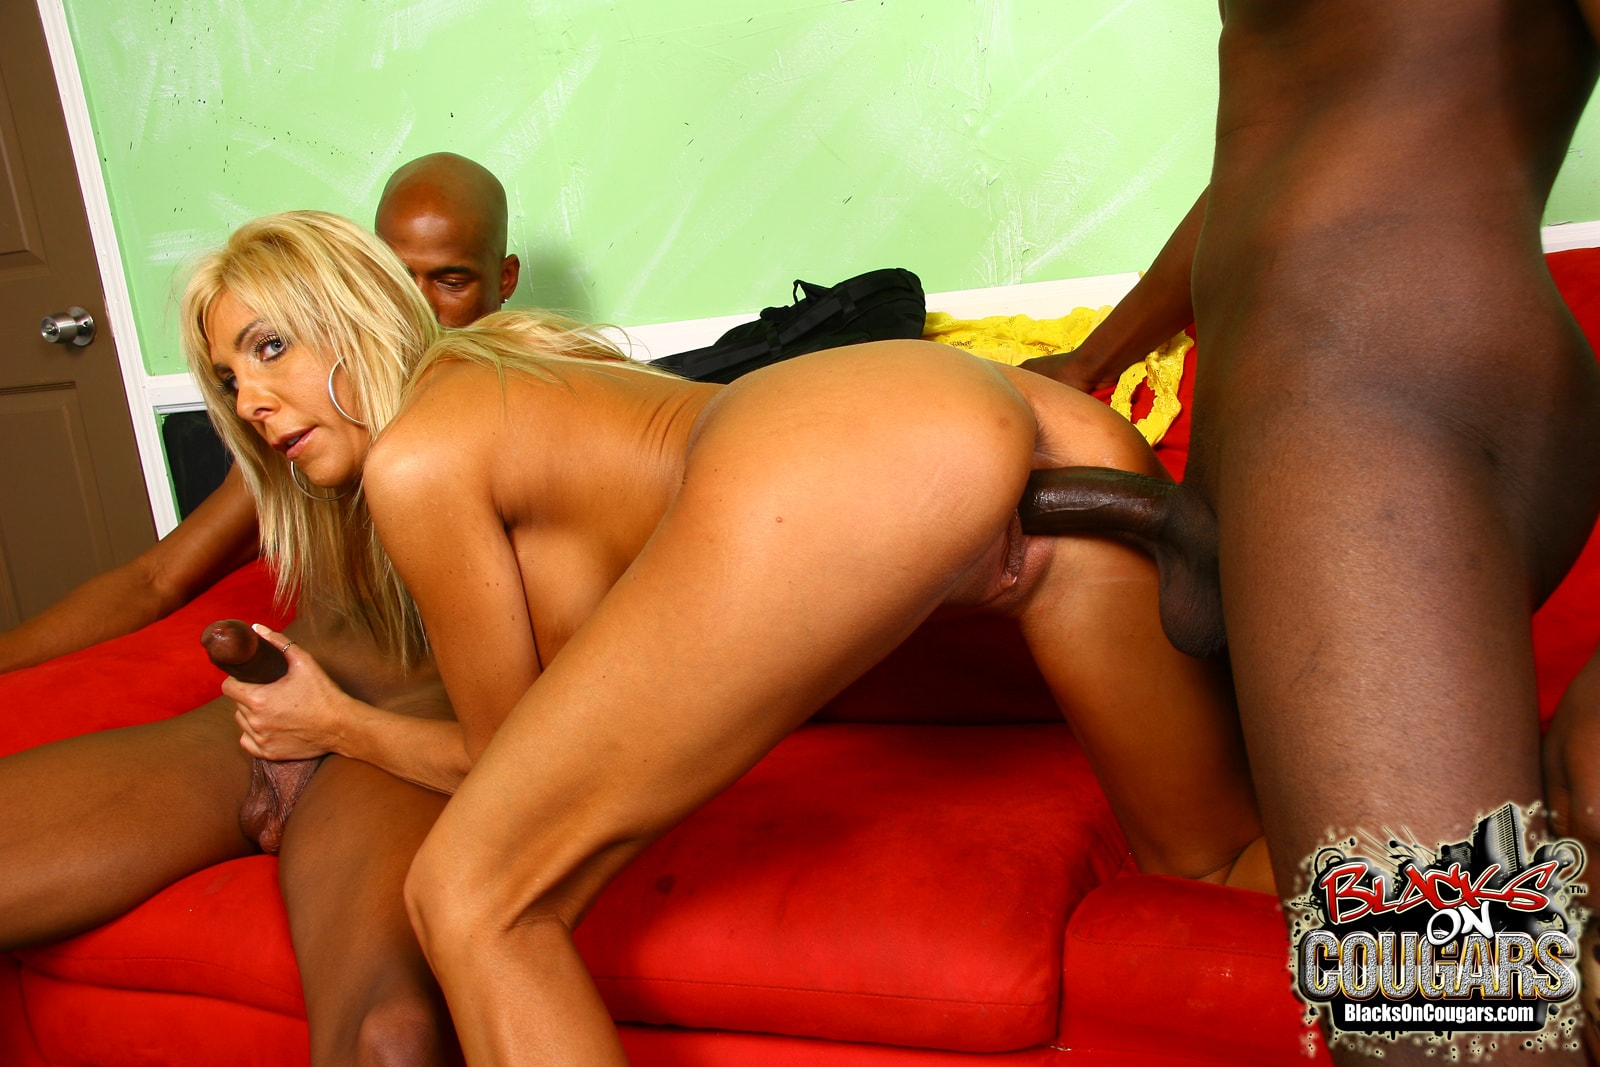 Dogfart '- Blacks On Cougars' starring Misty Vonage (Photo 21)